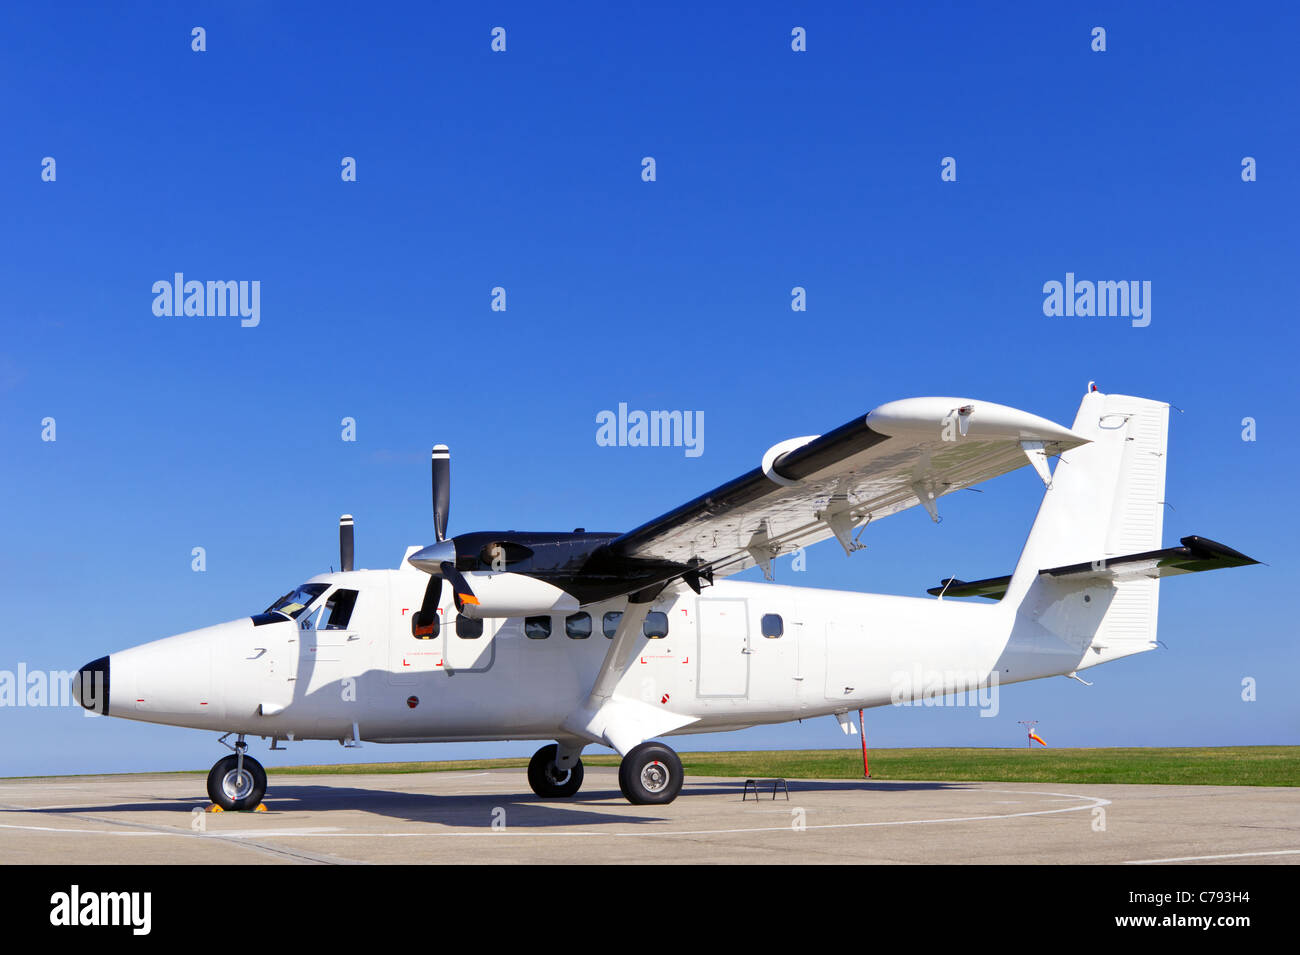 Photo of a twin propeller aircraft stationary on the runway on a bright sunny day with clear blue sky. - Stock Image